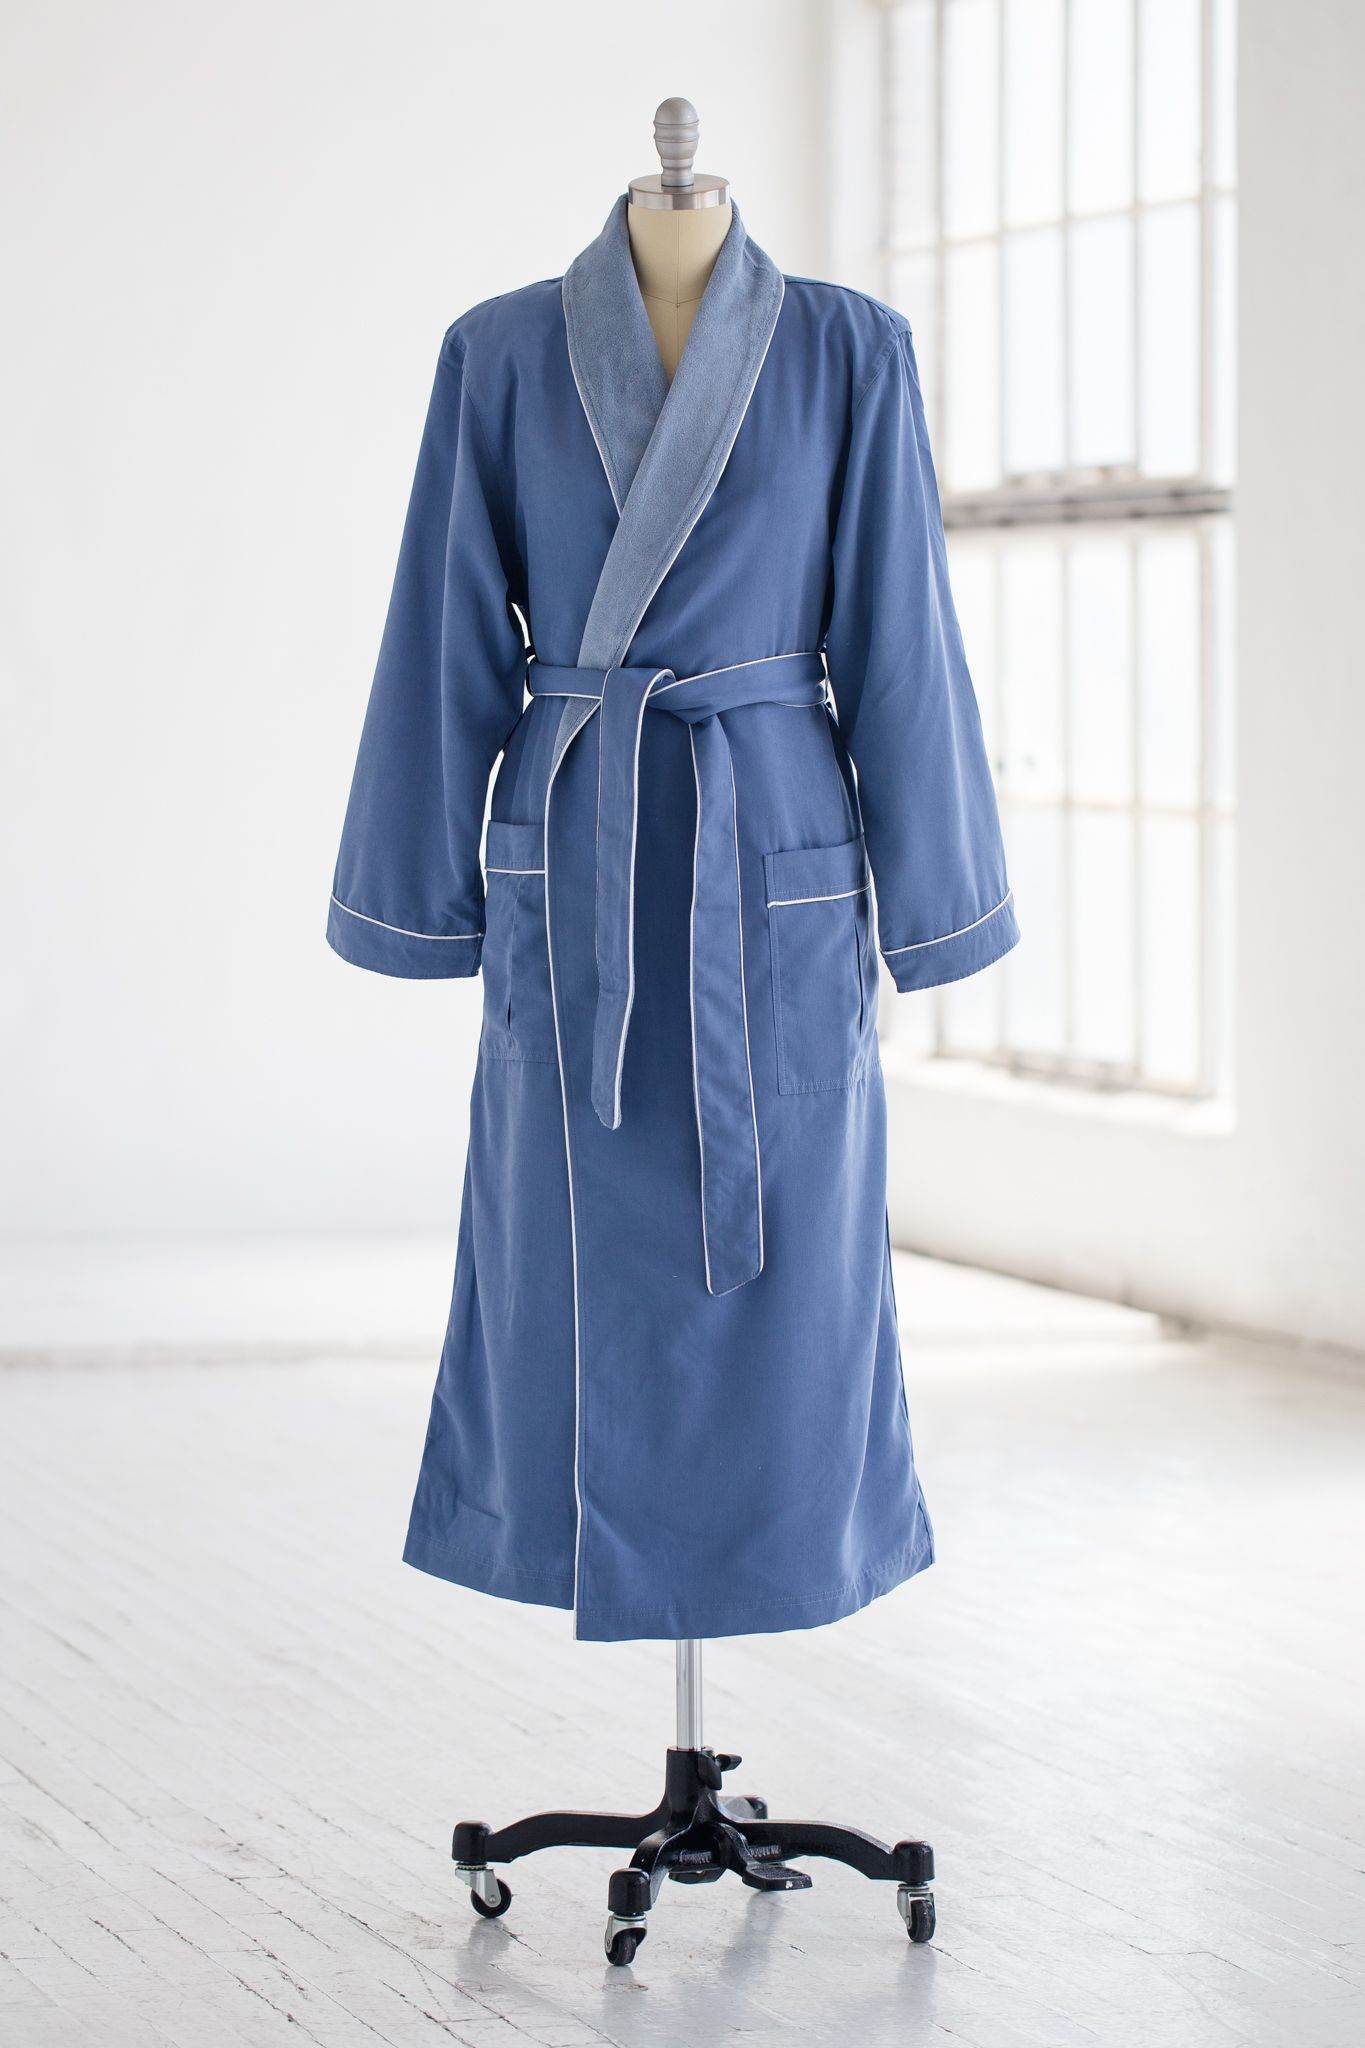 CLASSIC SPA ROBE TERRY CLOTH   MICROFIBER IN PERIWINKLE 124.00 Our best  selling men s   women s bd9fde821